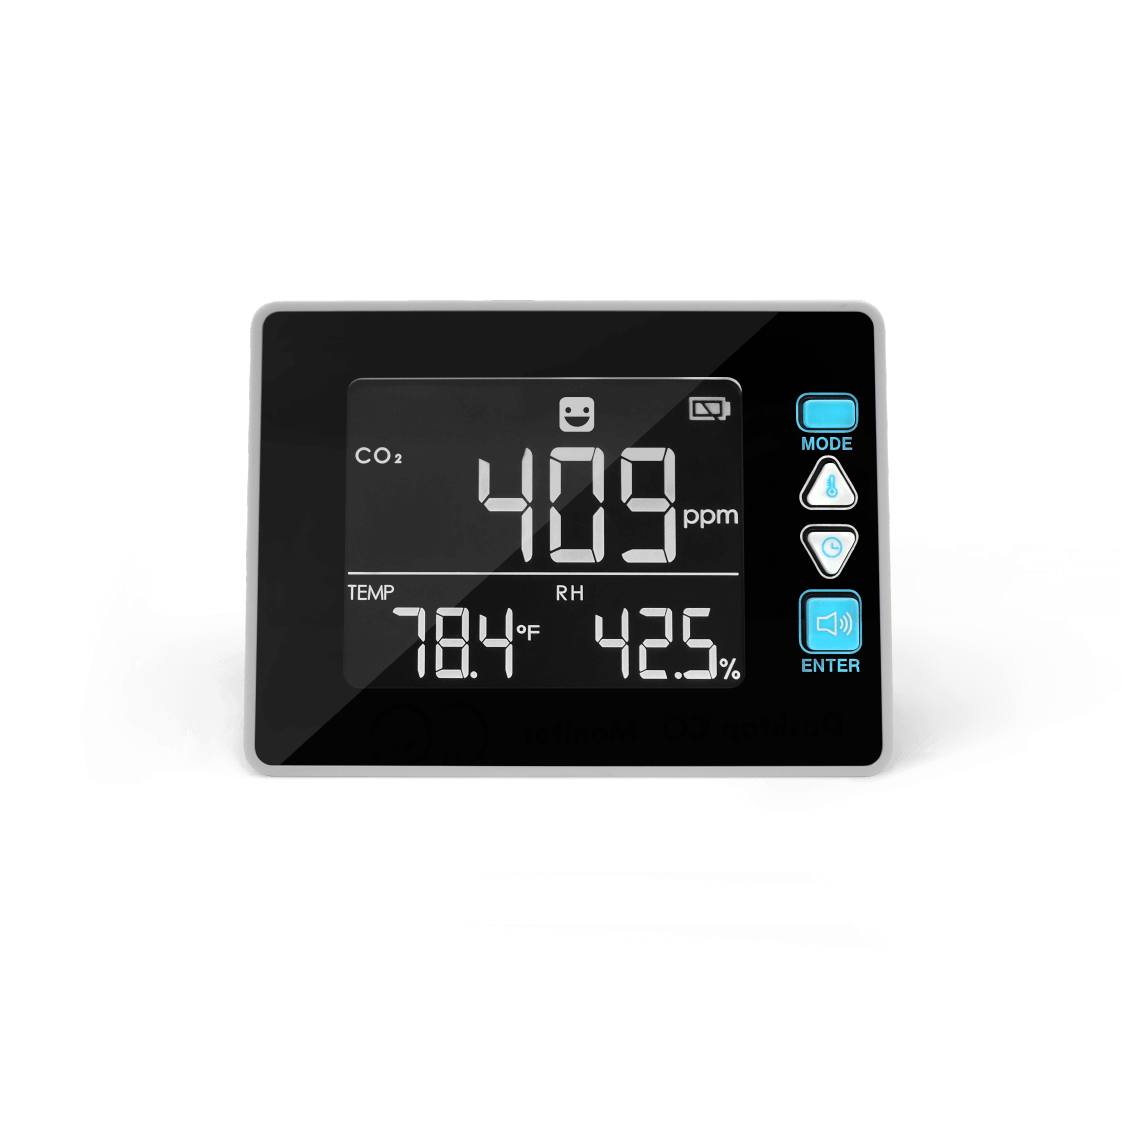 PerfectPrime CO2390 CO2 meter